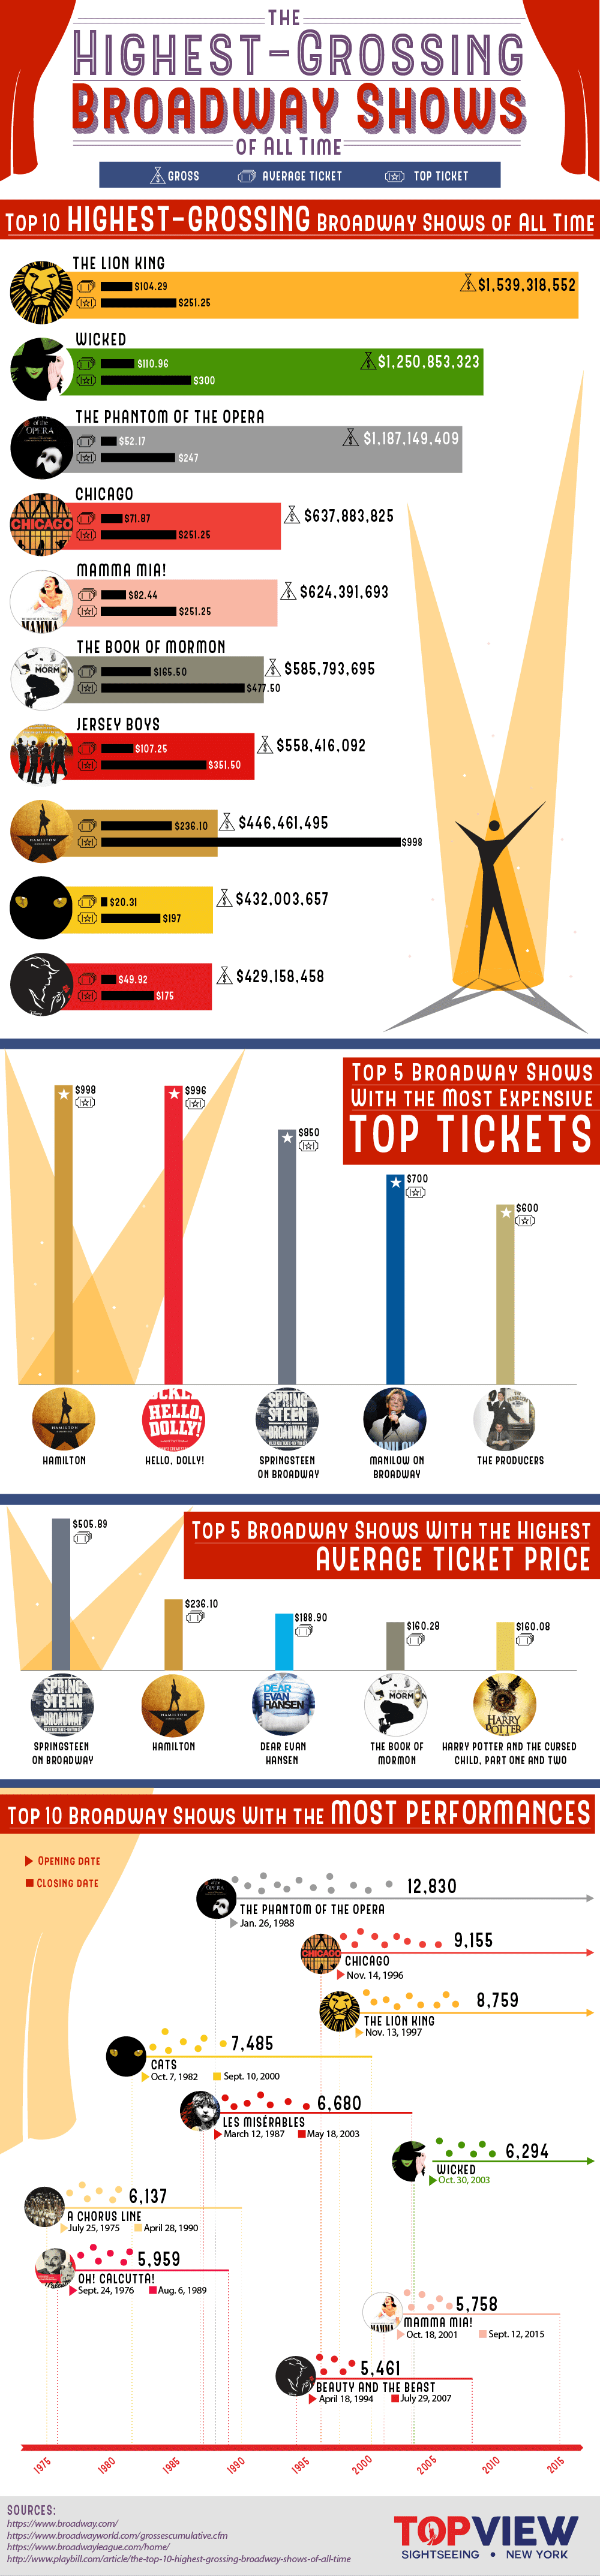 The Highest Grossing Broadway Shows of All Time #infographic